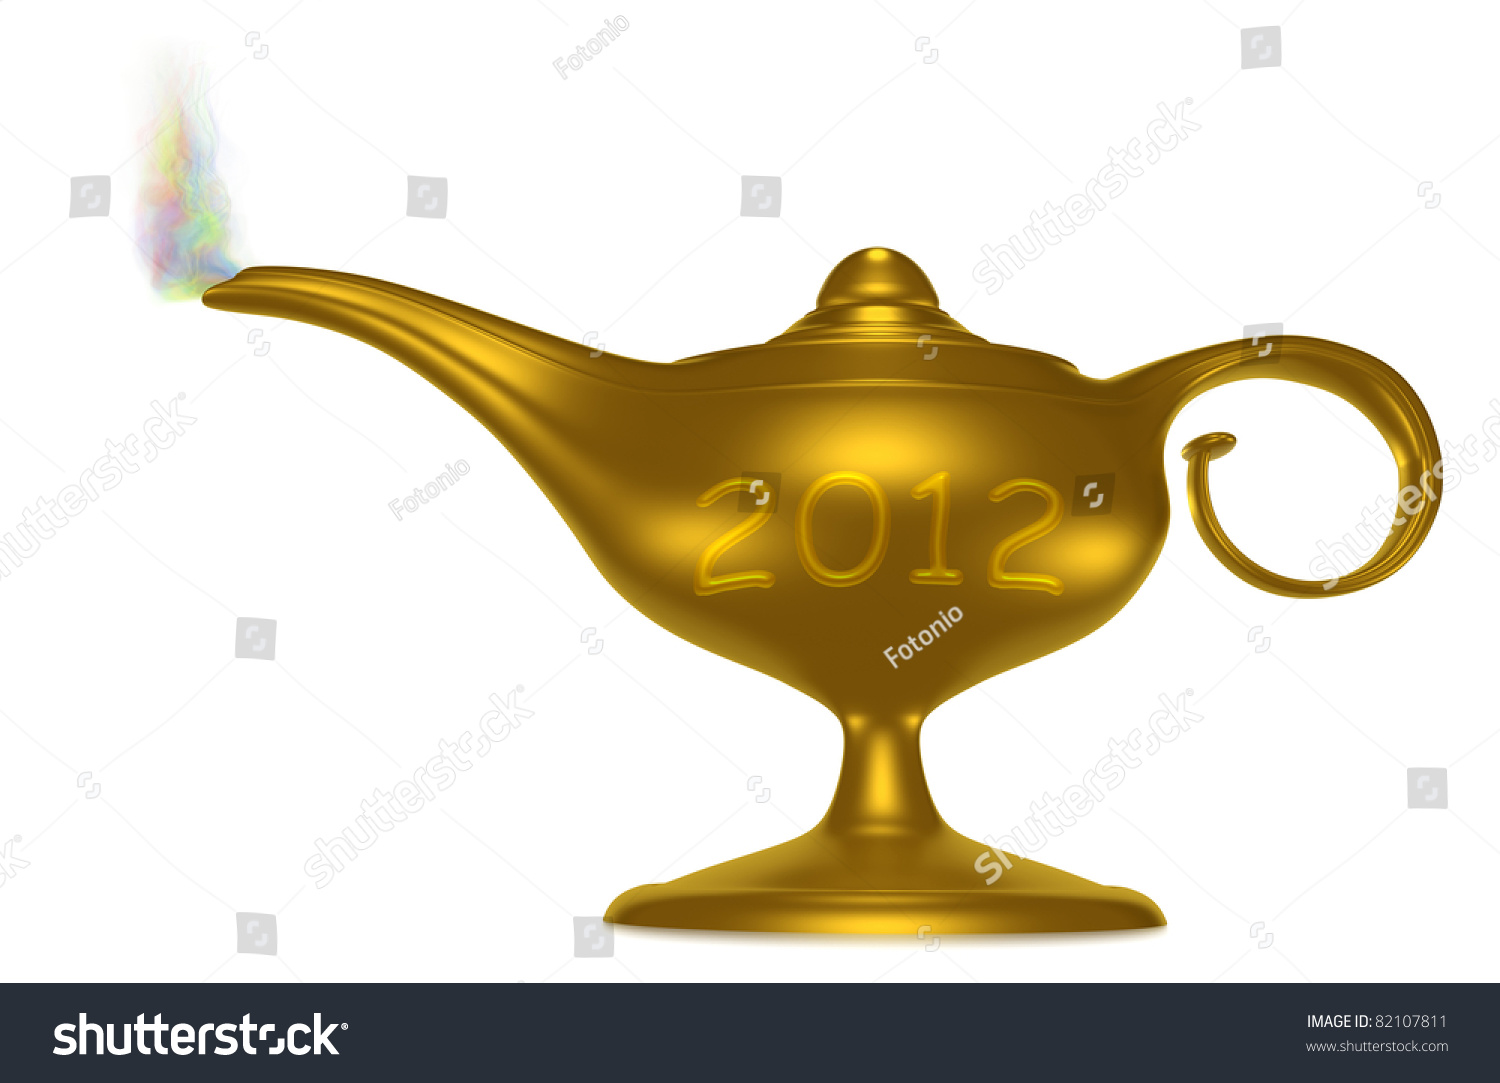 Magical genie lamp smoke colored symbol stock illustration a magical genie lamp with smoke colored symbol of welcome of the new year 2012 biocorpaavc Gallery